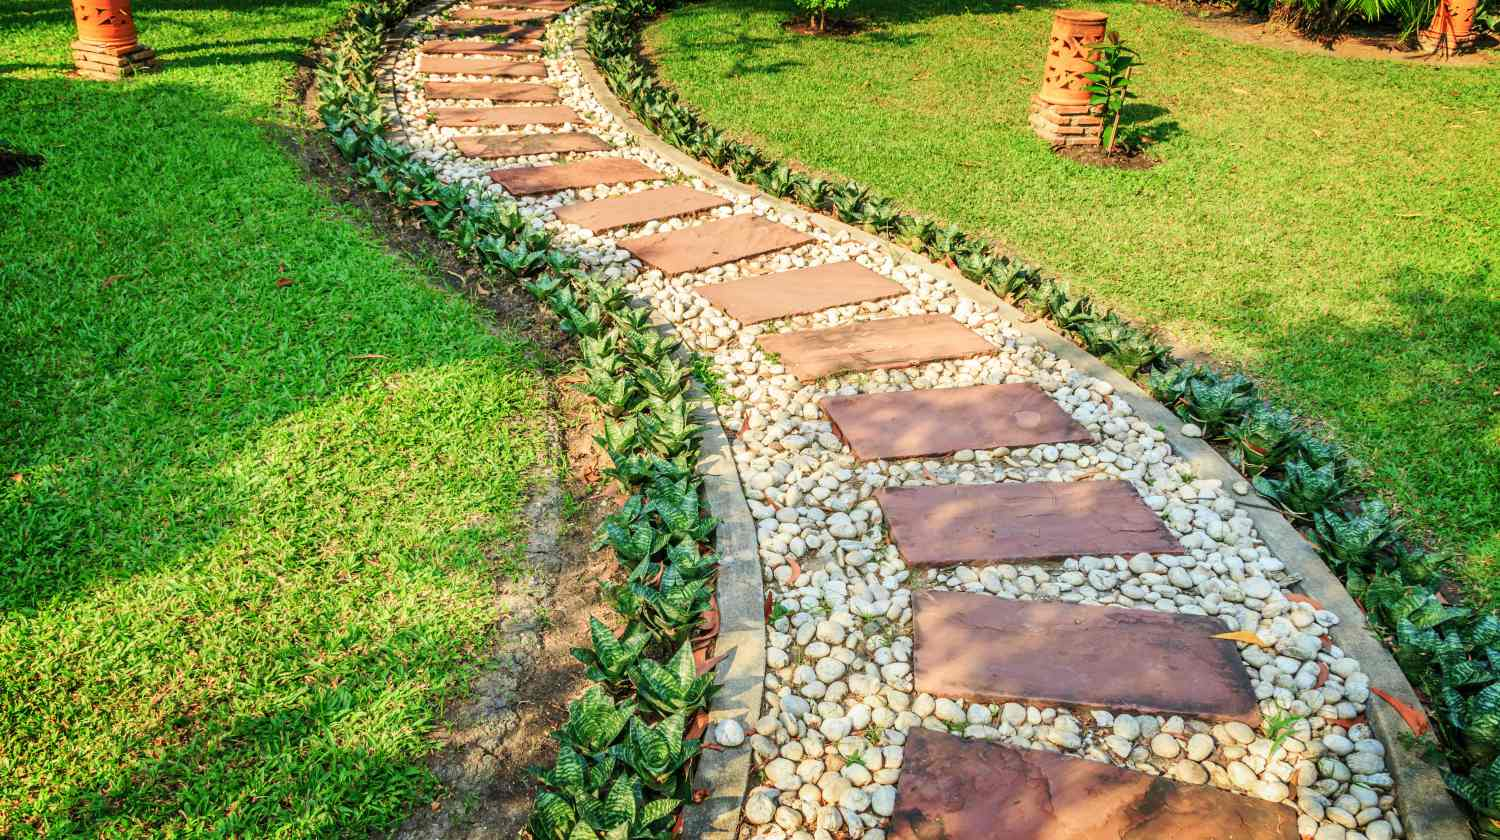 Featured | A stone walkway in the outdoor green garden | DIY Walkway Ideas To DIY Before Summer Begins